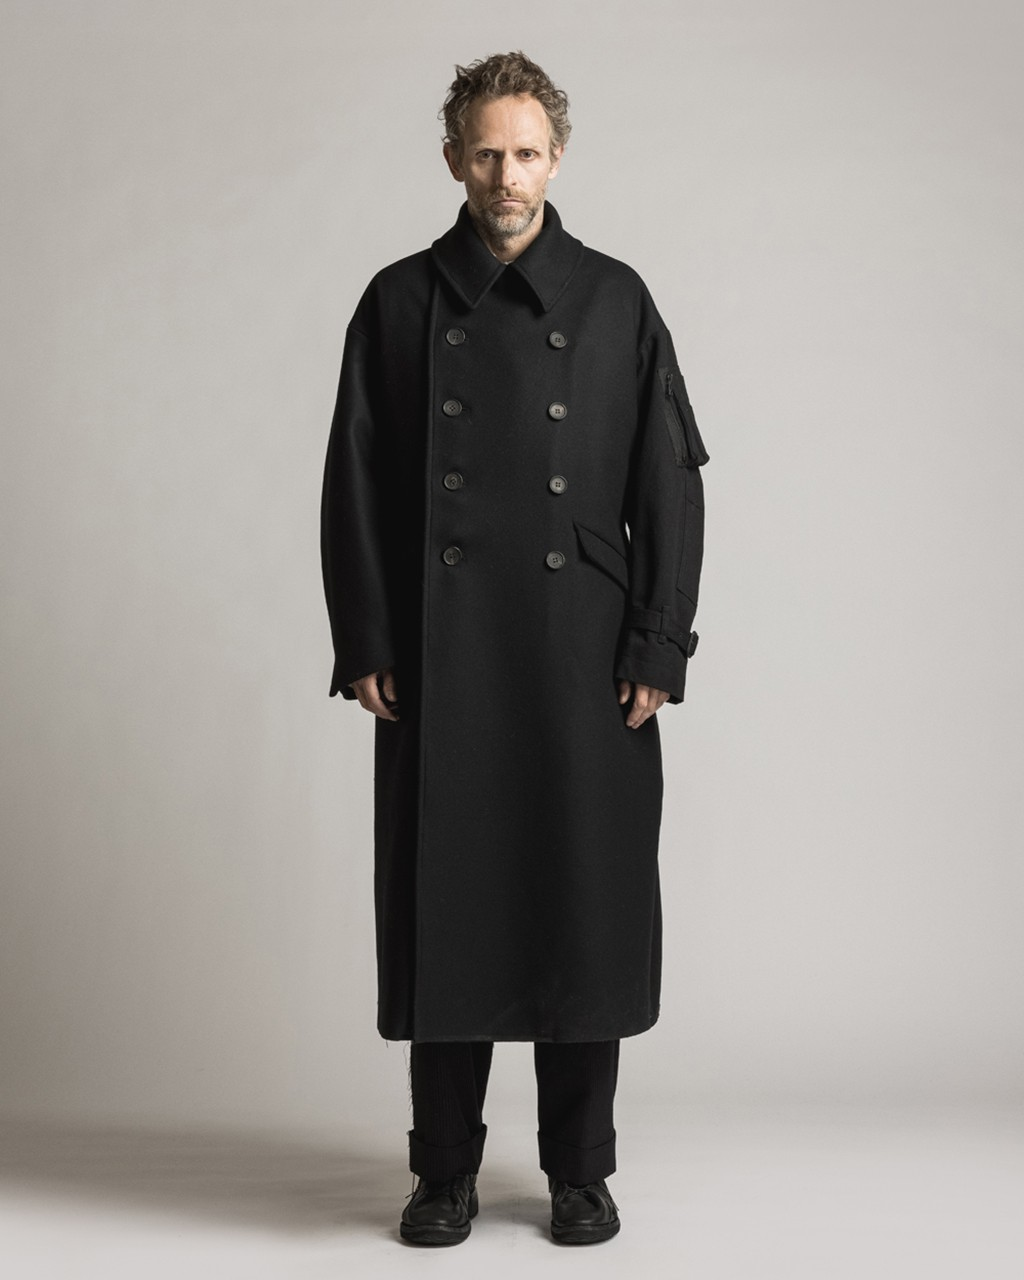 21AW DUE-Ⅲ-023-COT Military coat